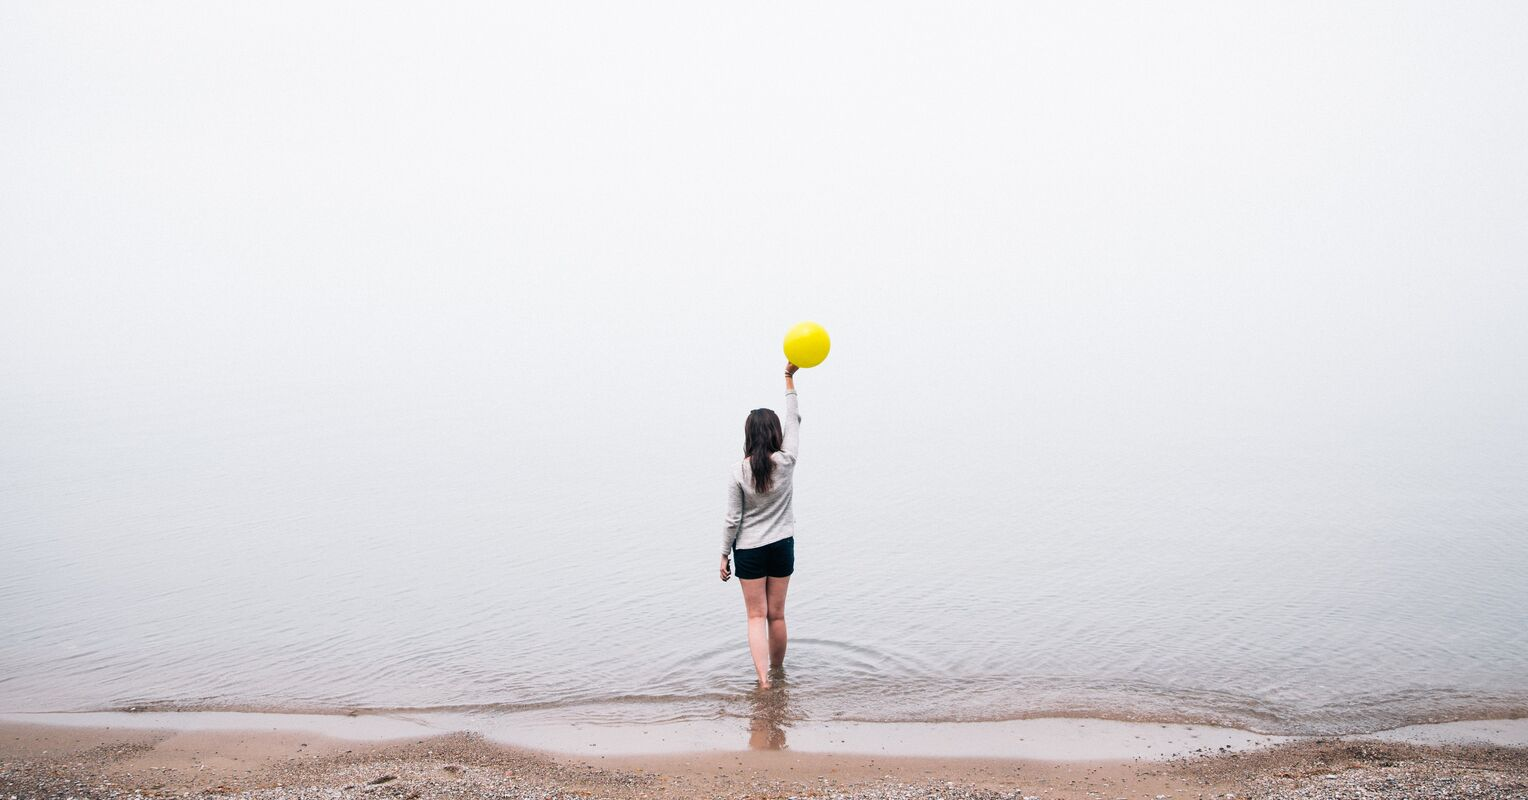 Important Tips on How to Let Go and Free Yourself